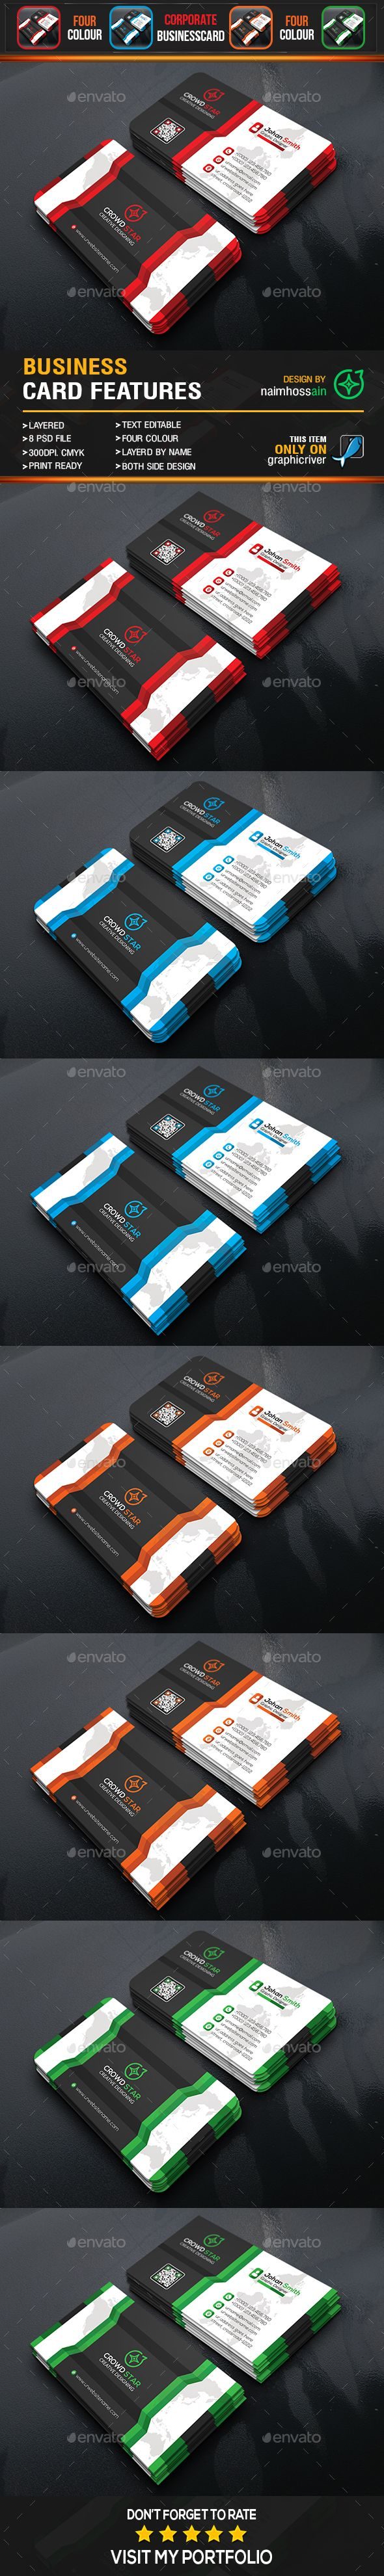 308 best Business Cards images on Pinterest